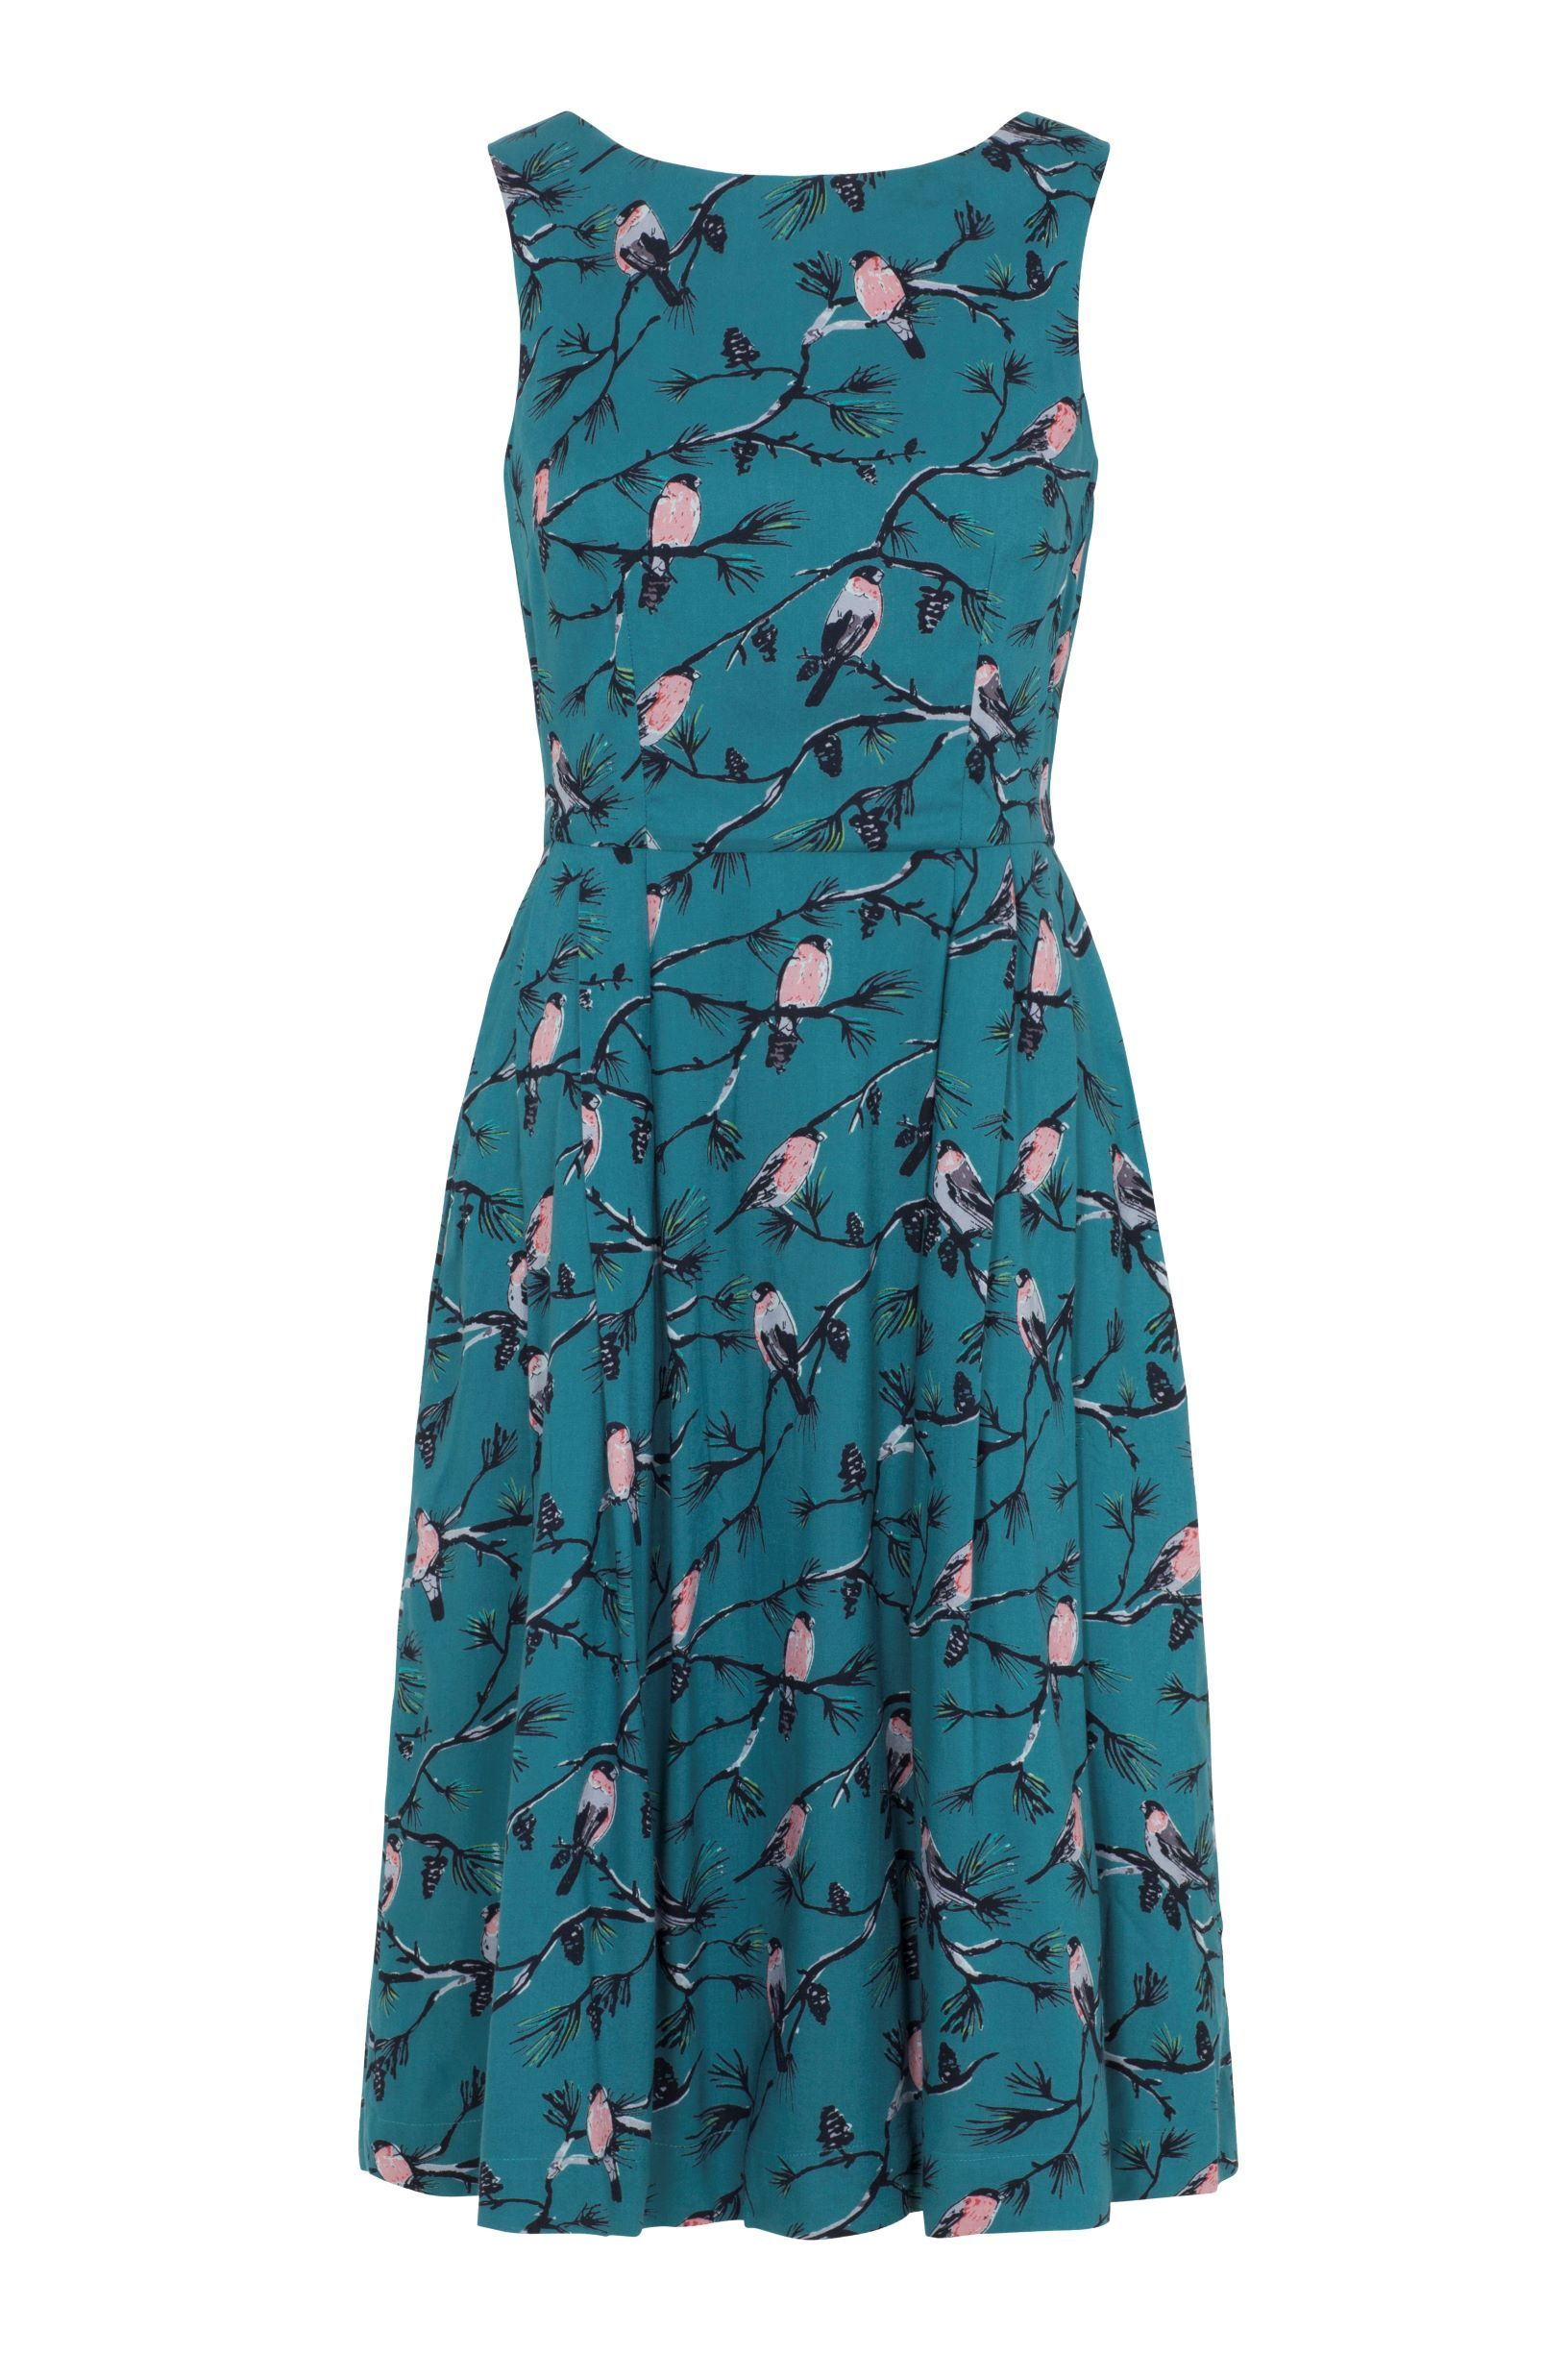 Emily & Fin Penny Bird Dress - BouChic